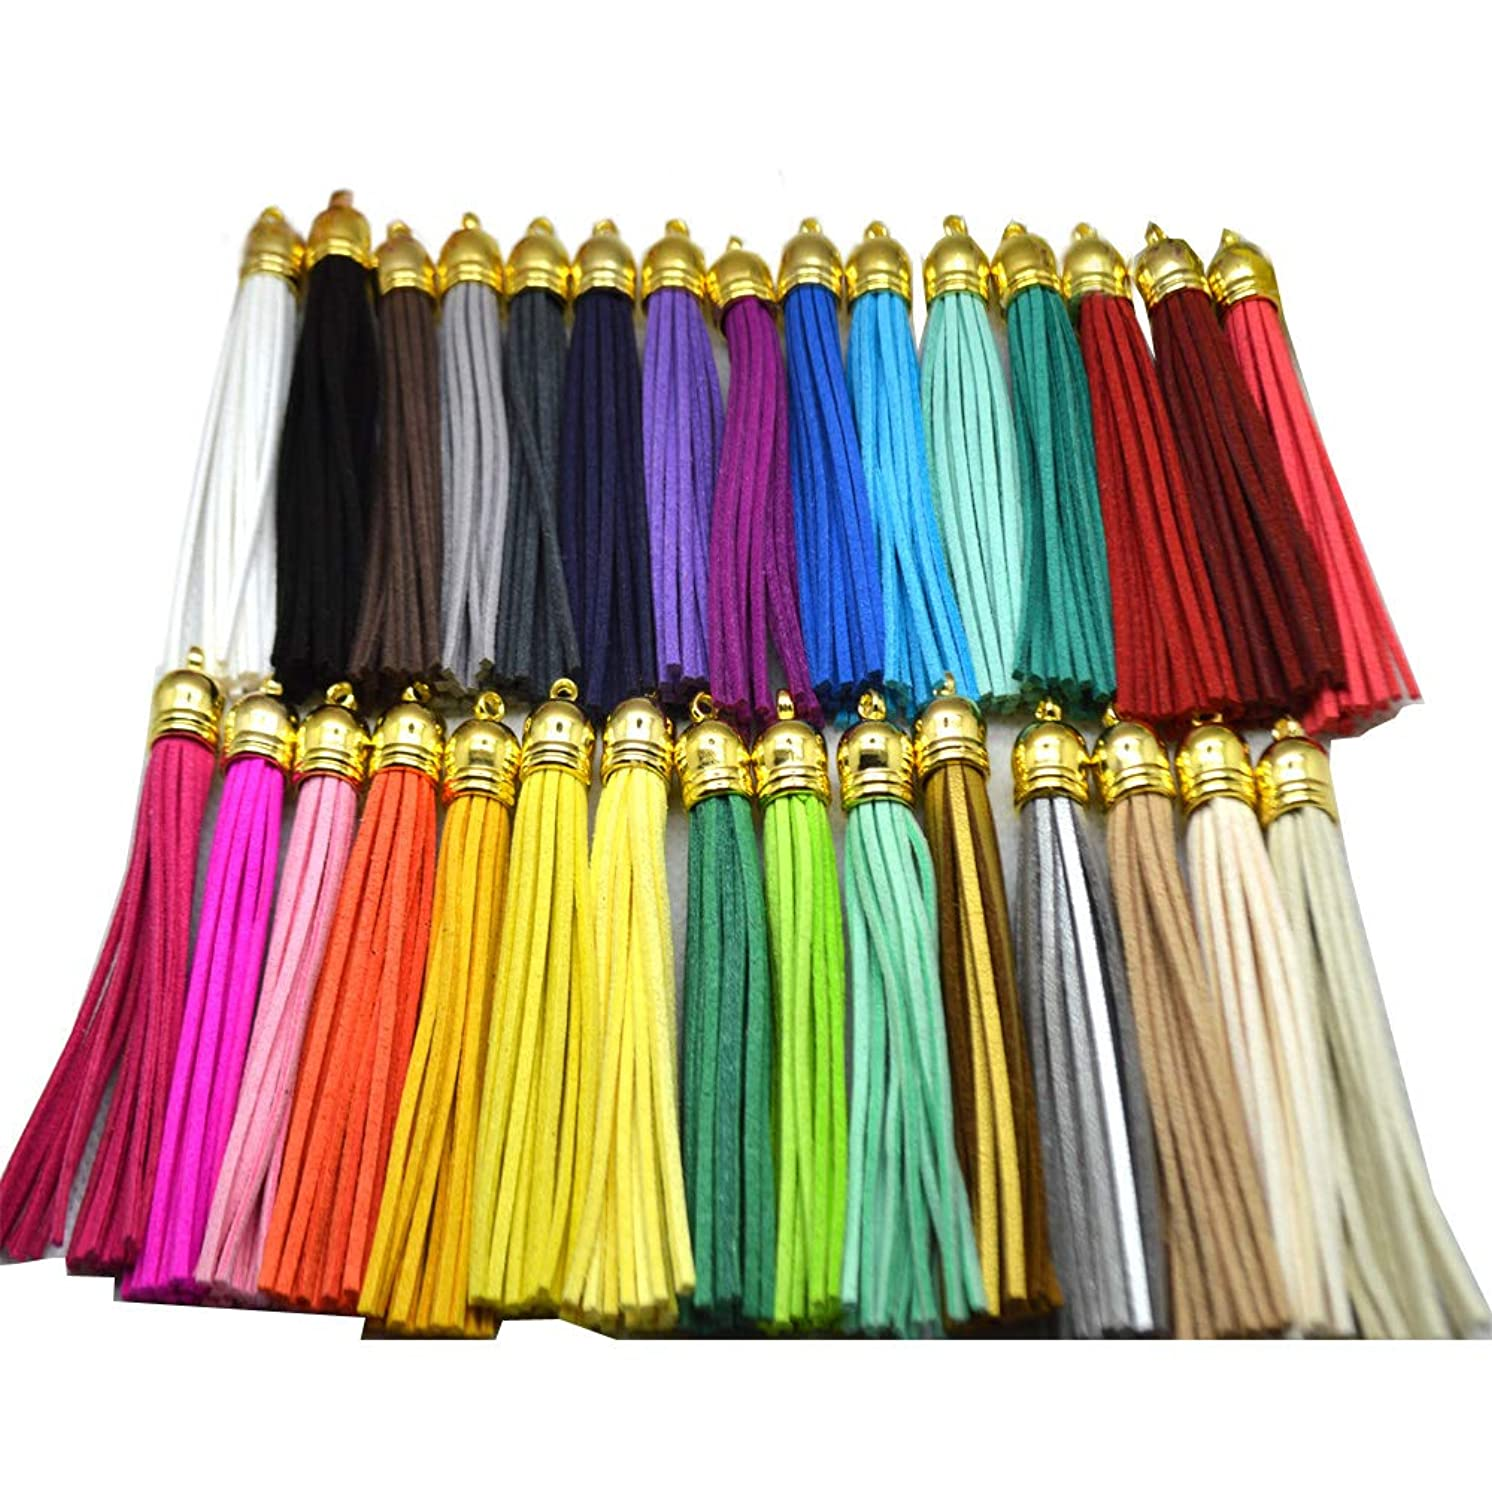 PAMIR TONG 30pcs/lot Leather Tassel Cell Phone Straps DIY Earring/Necklace Charms (Gold Caps)